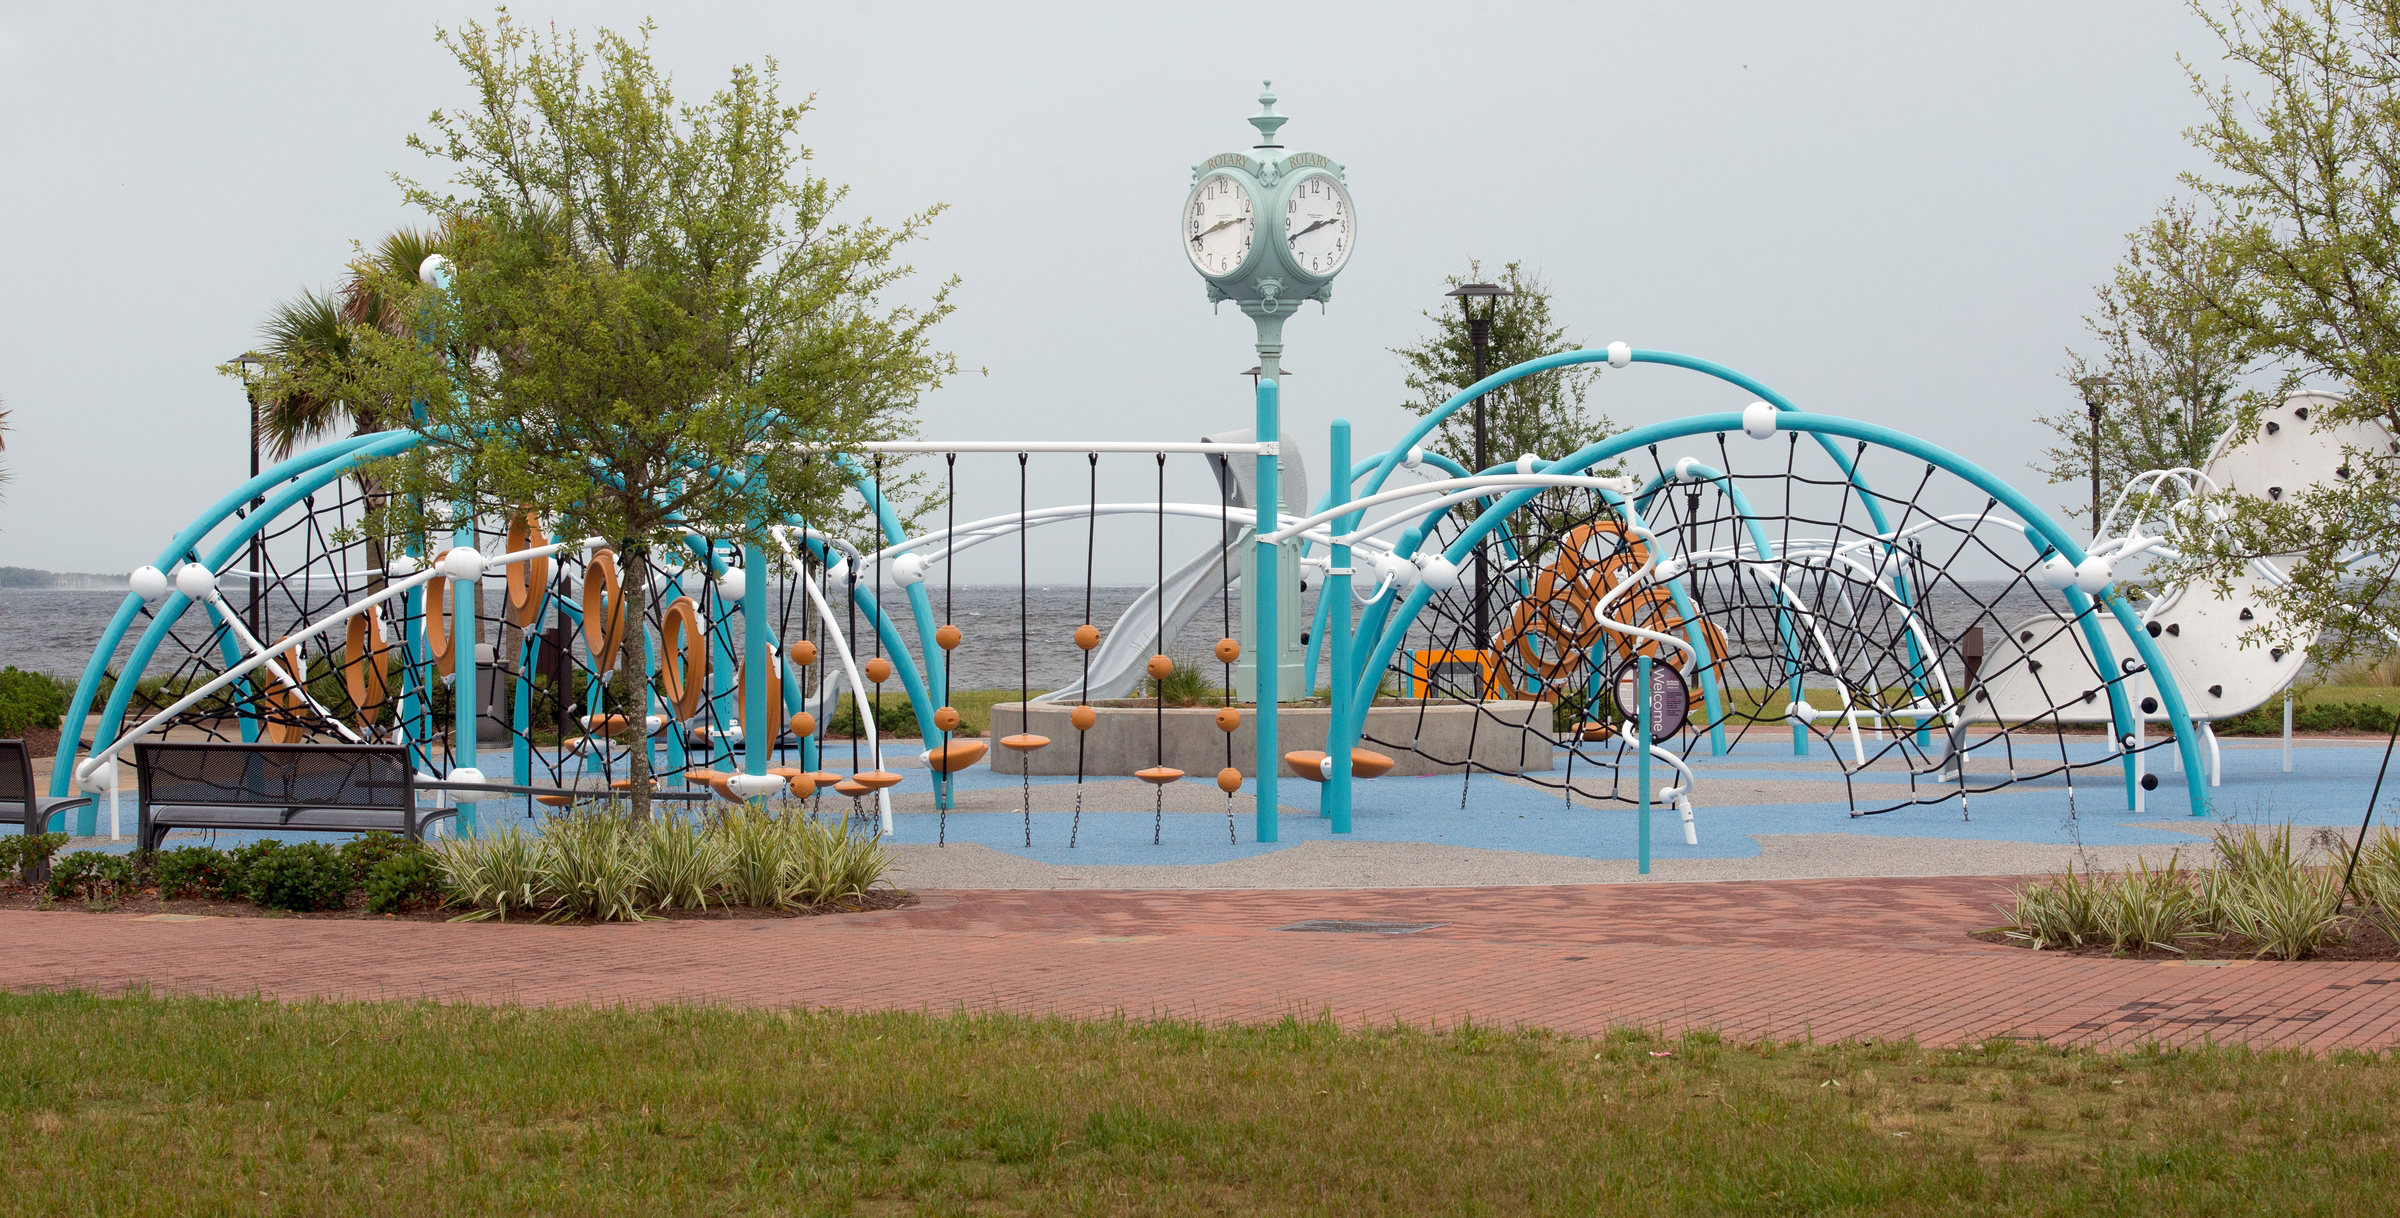 Community Maritime Park Scores Highest. It has good lighting, memorable features and well-maintained facilities.